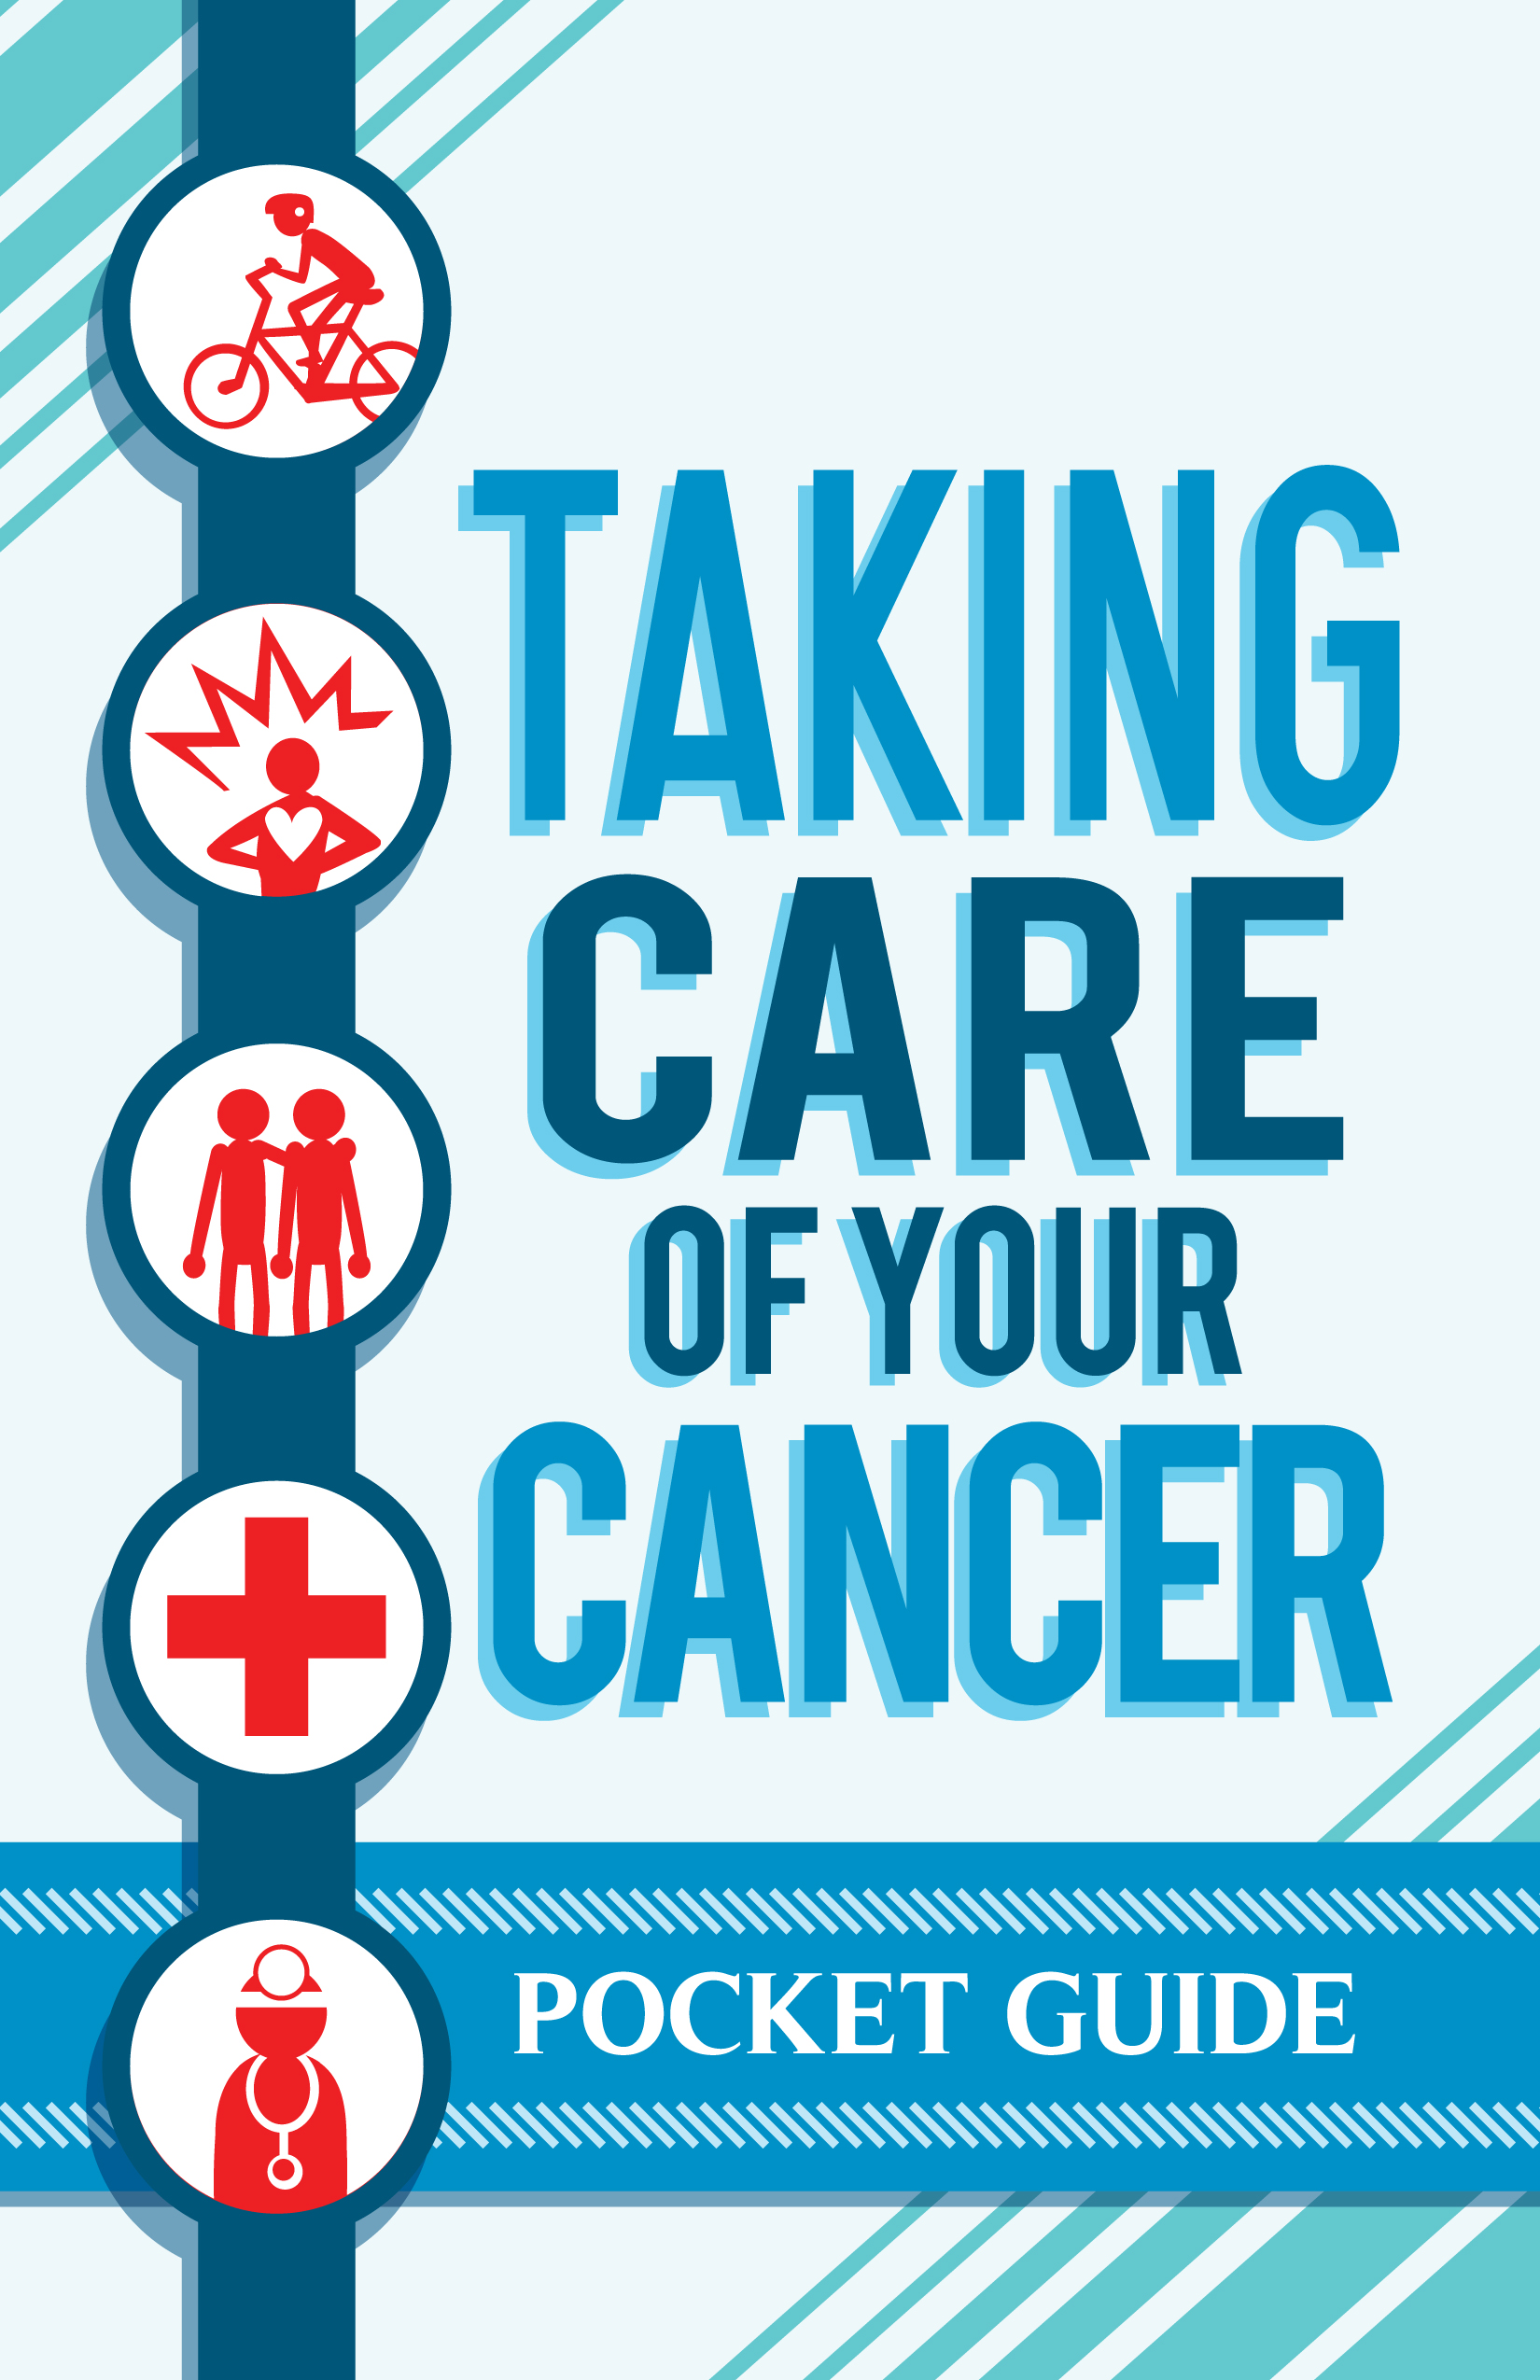 TAKING CARE OF YOUR CANCER: